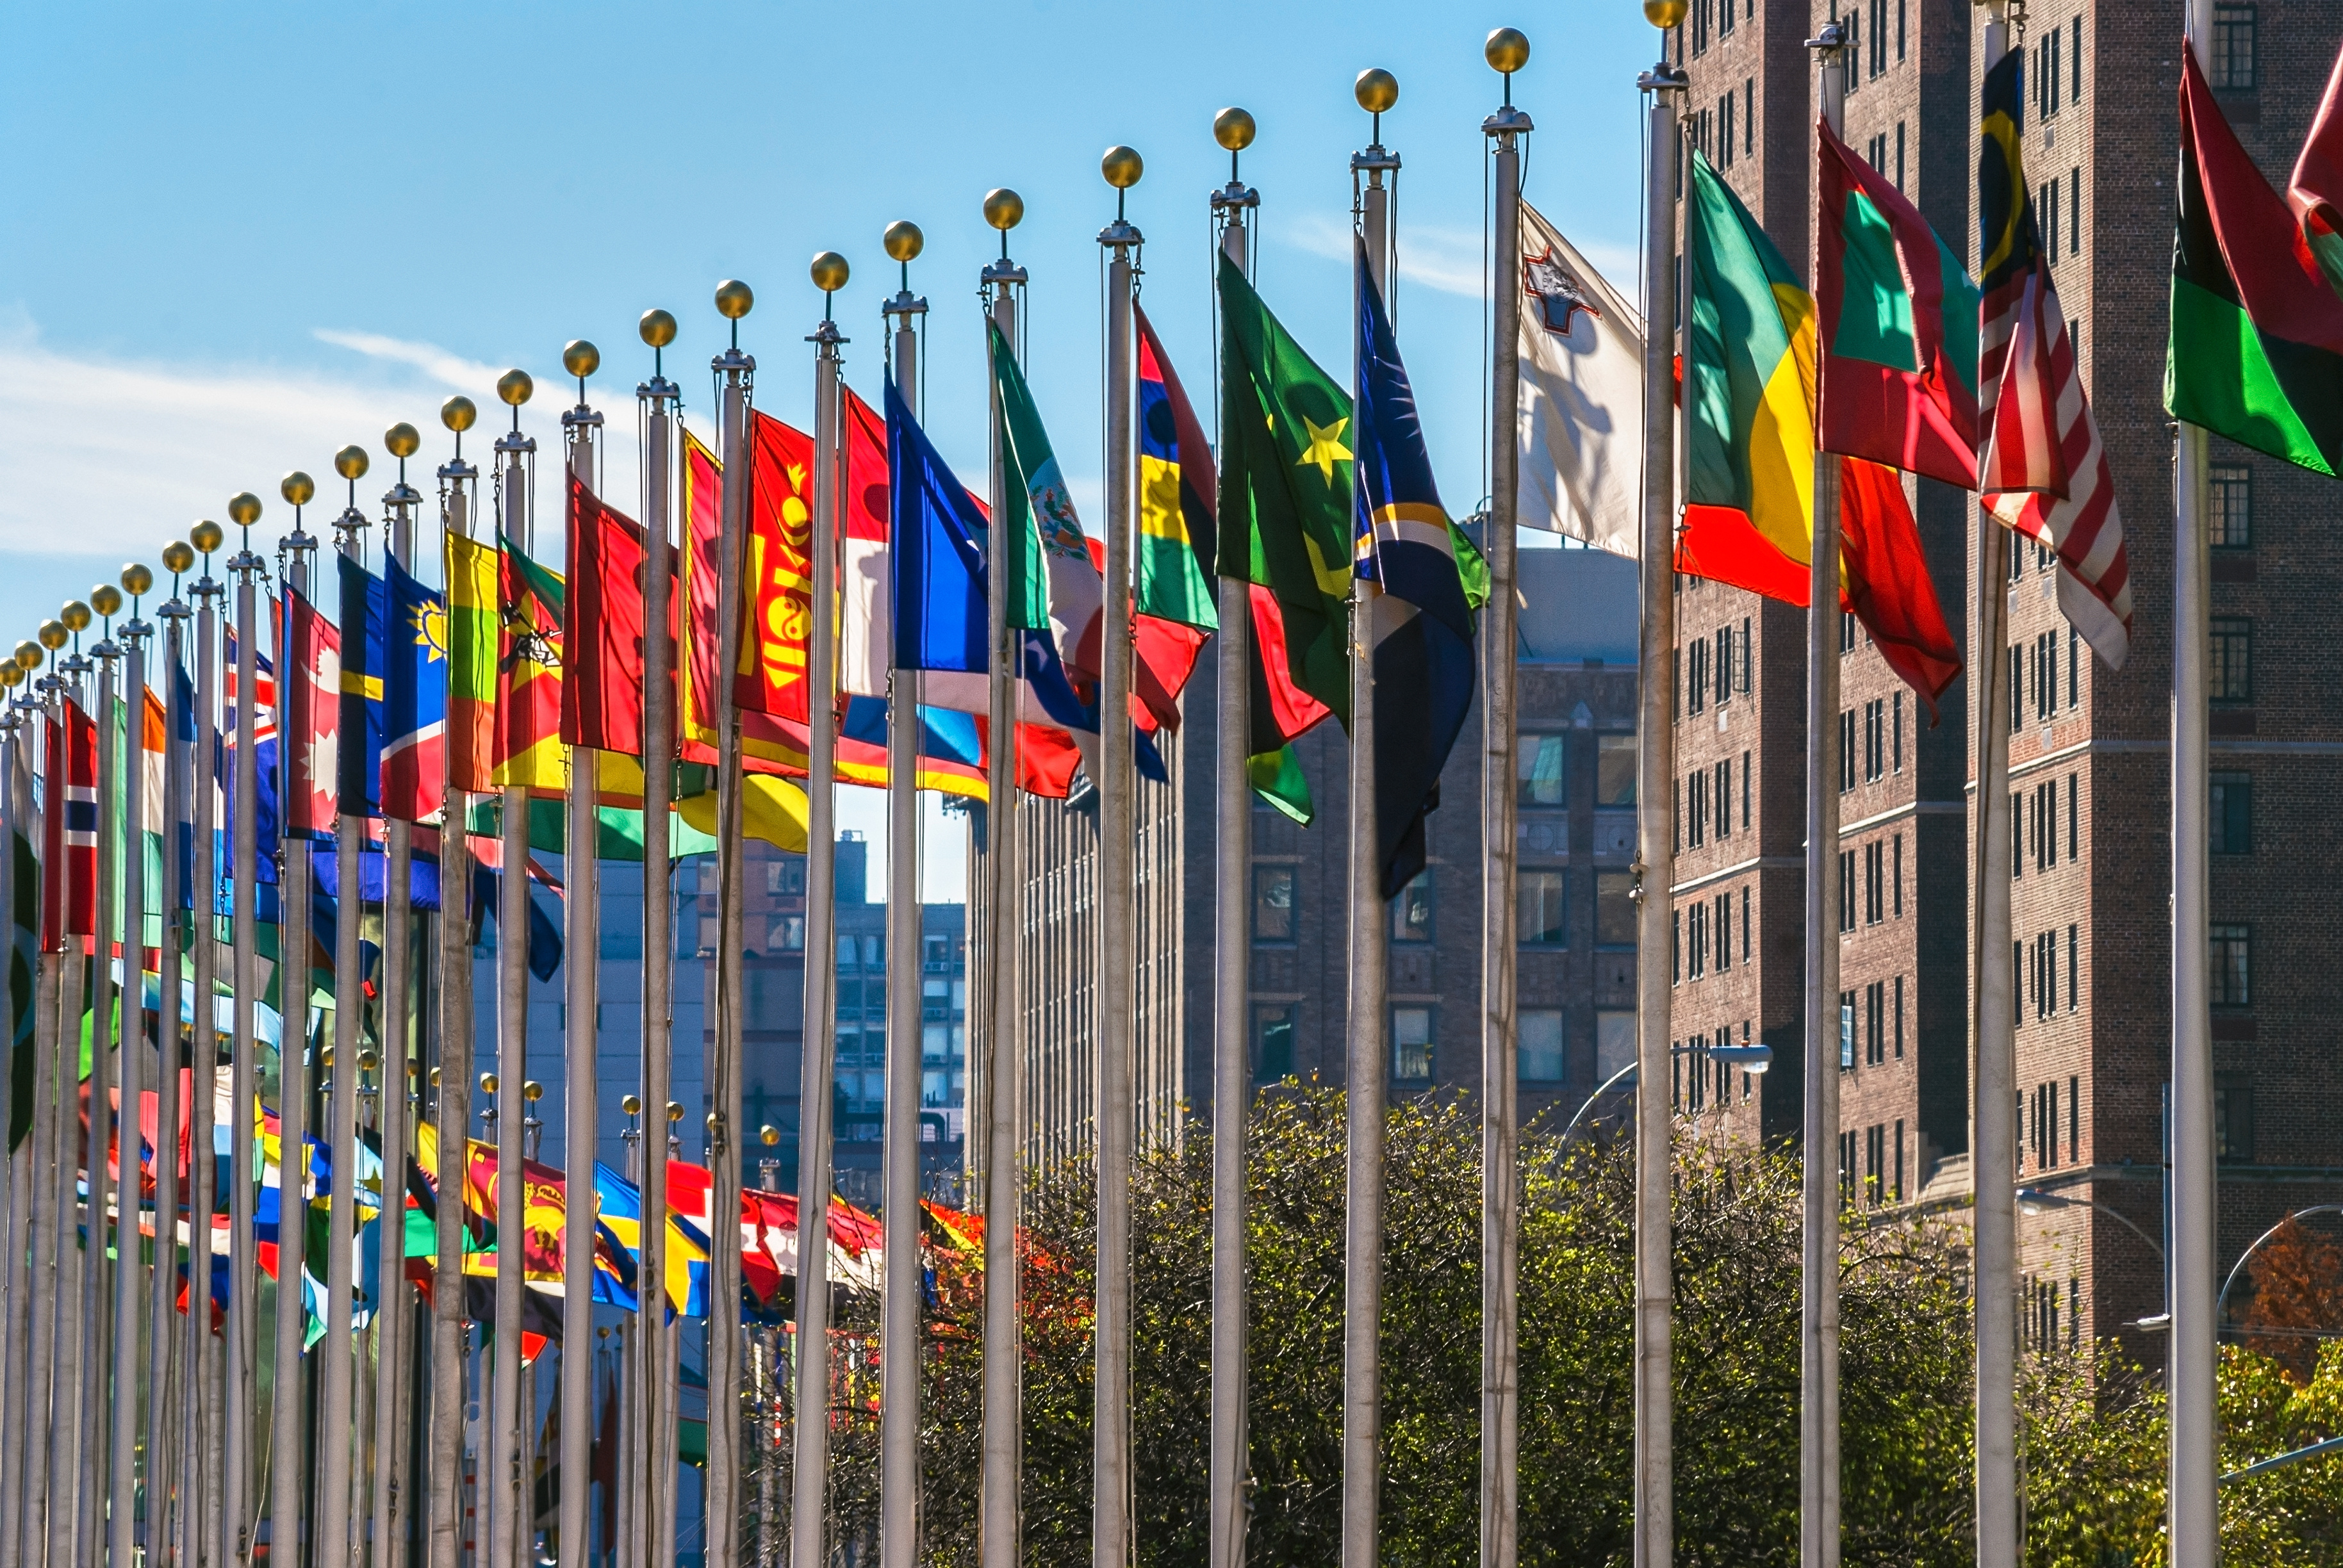 Flags of the UN